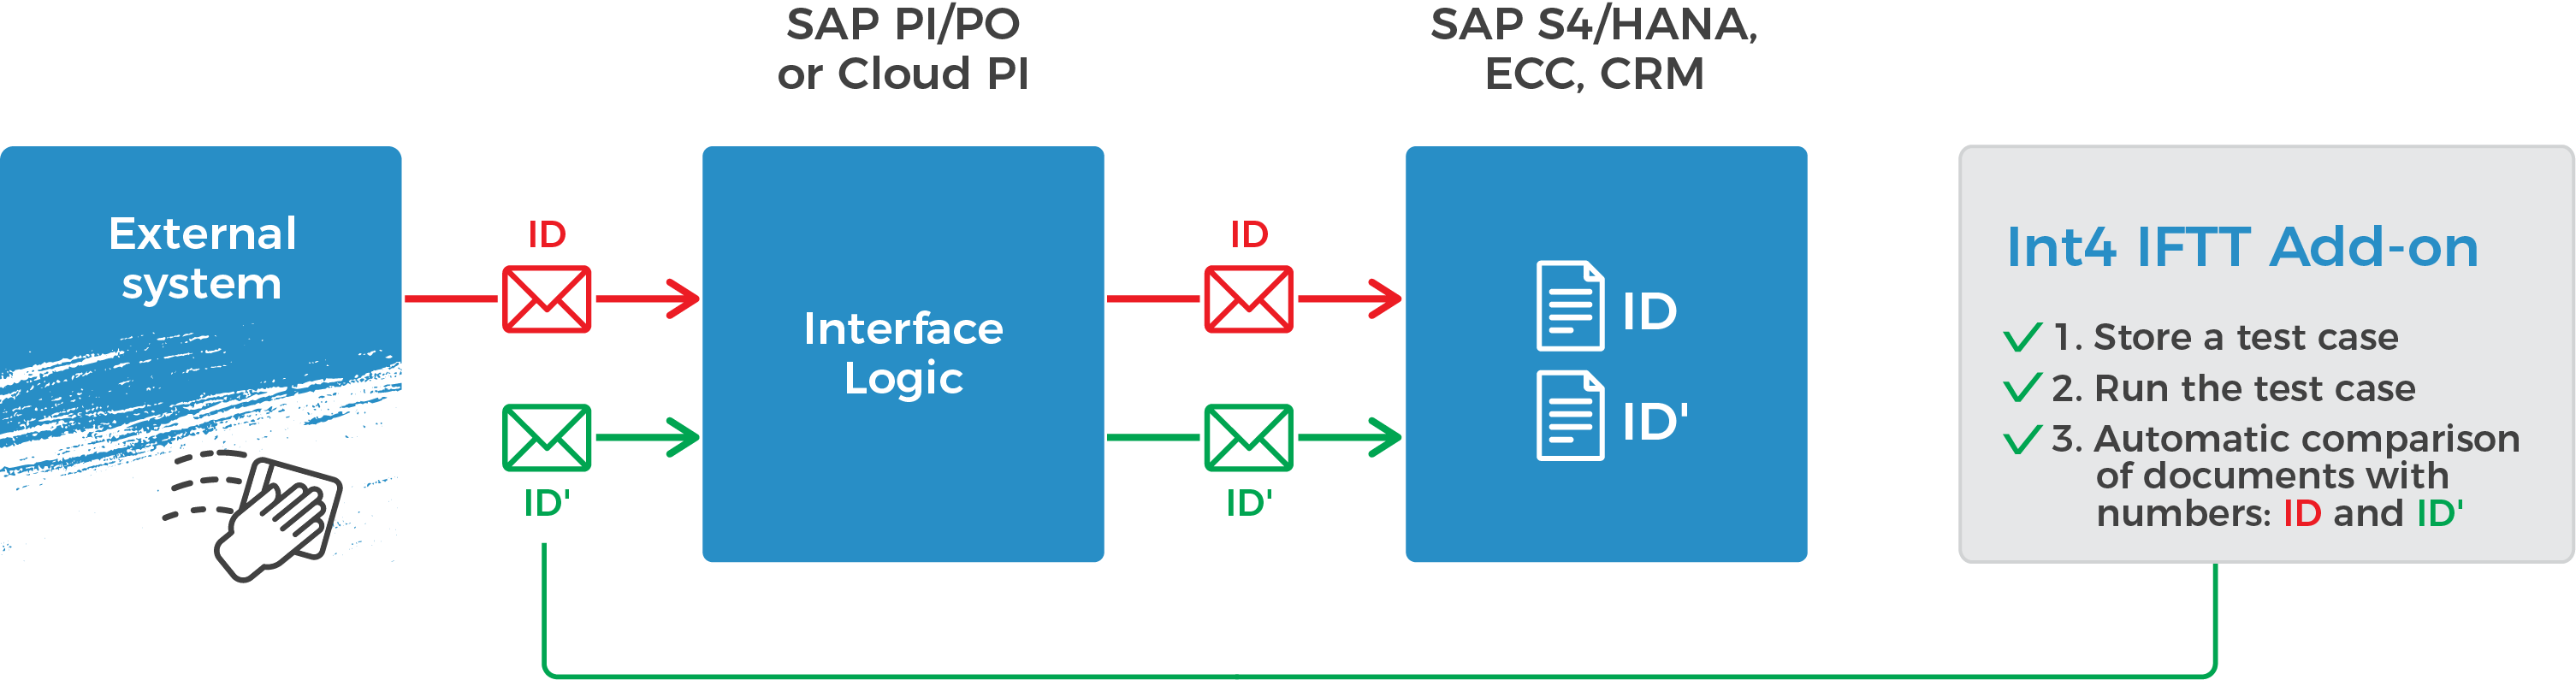 SAP PO testing tool  Automated software to test SAP